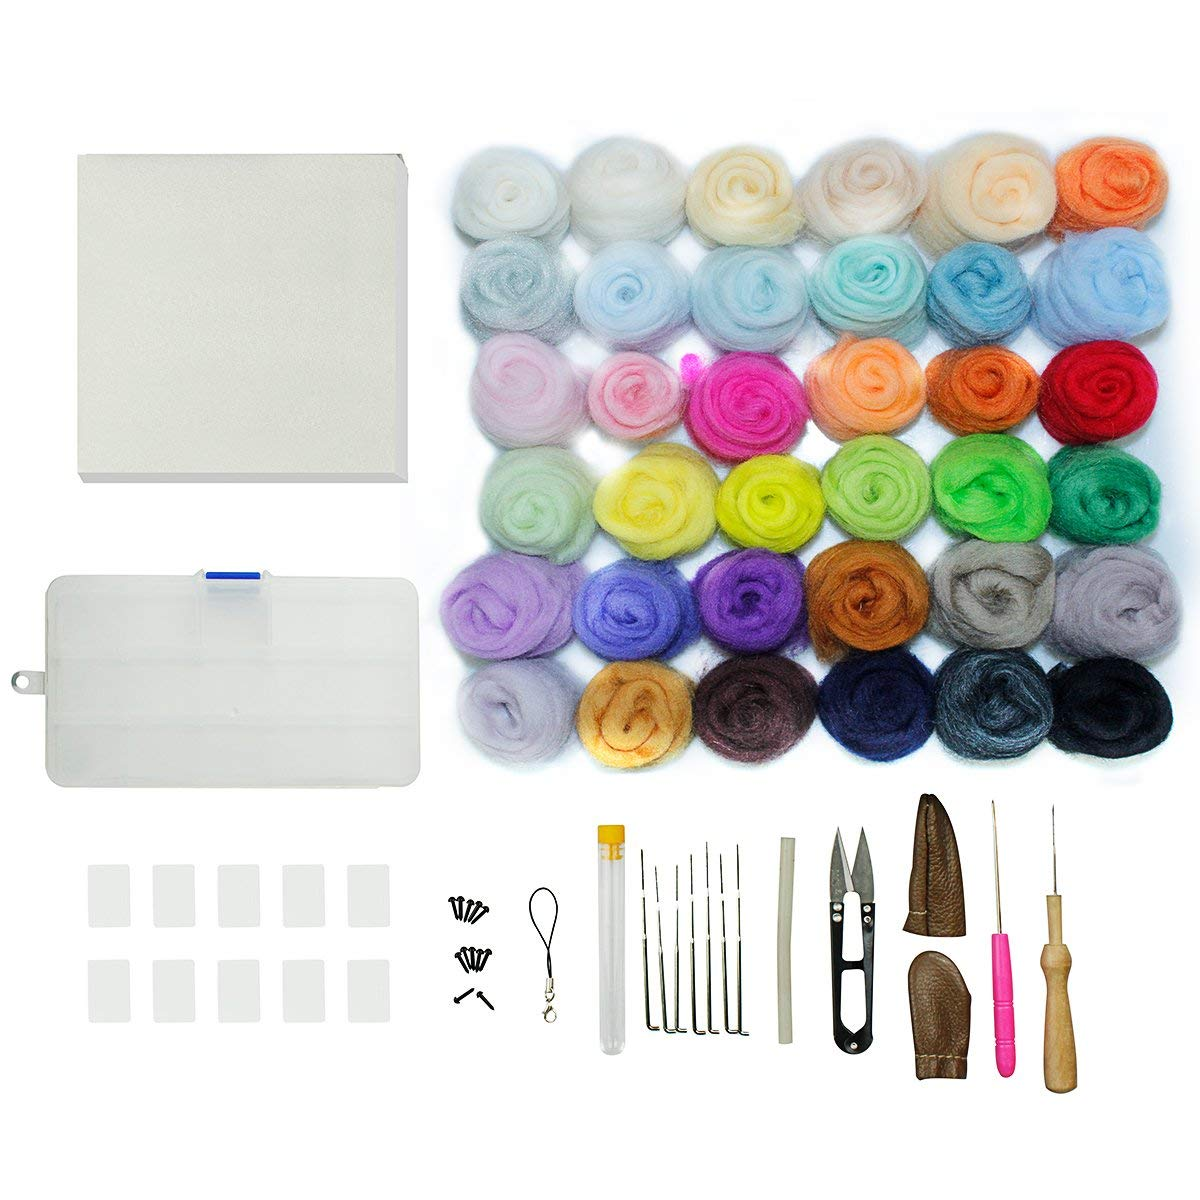 16 Colours Wool Fibre Materials Spinning Craft Materials Starter Kit Needle Felting Hand Spinning Materials Wool Felt Tool Set